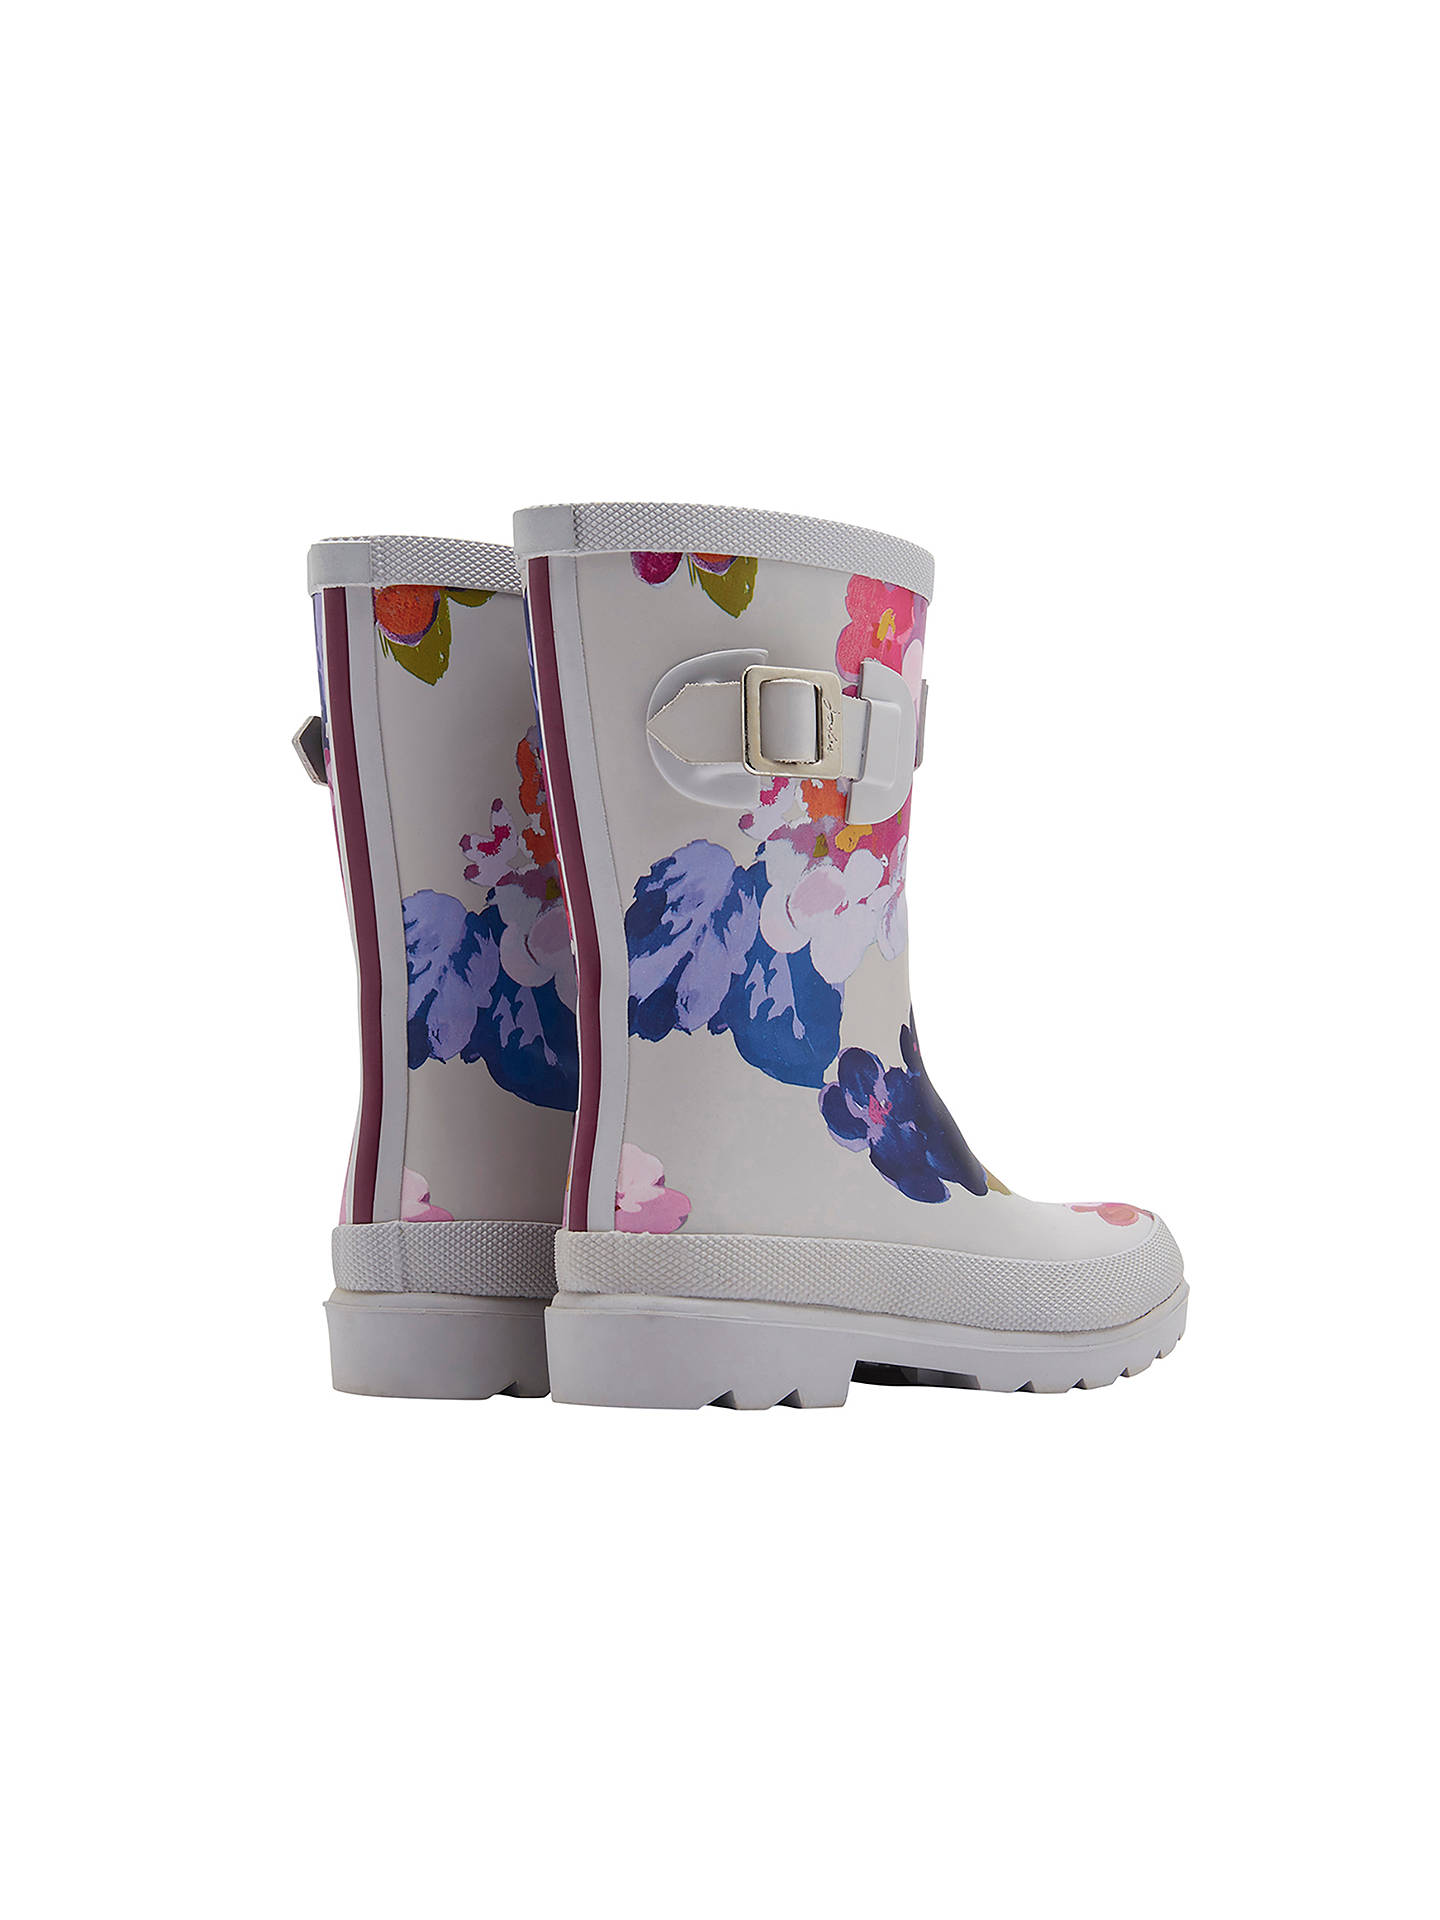 BuyJoules Children's Floral Wellington Boots, Grey, 2 Online at johnlewis.com